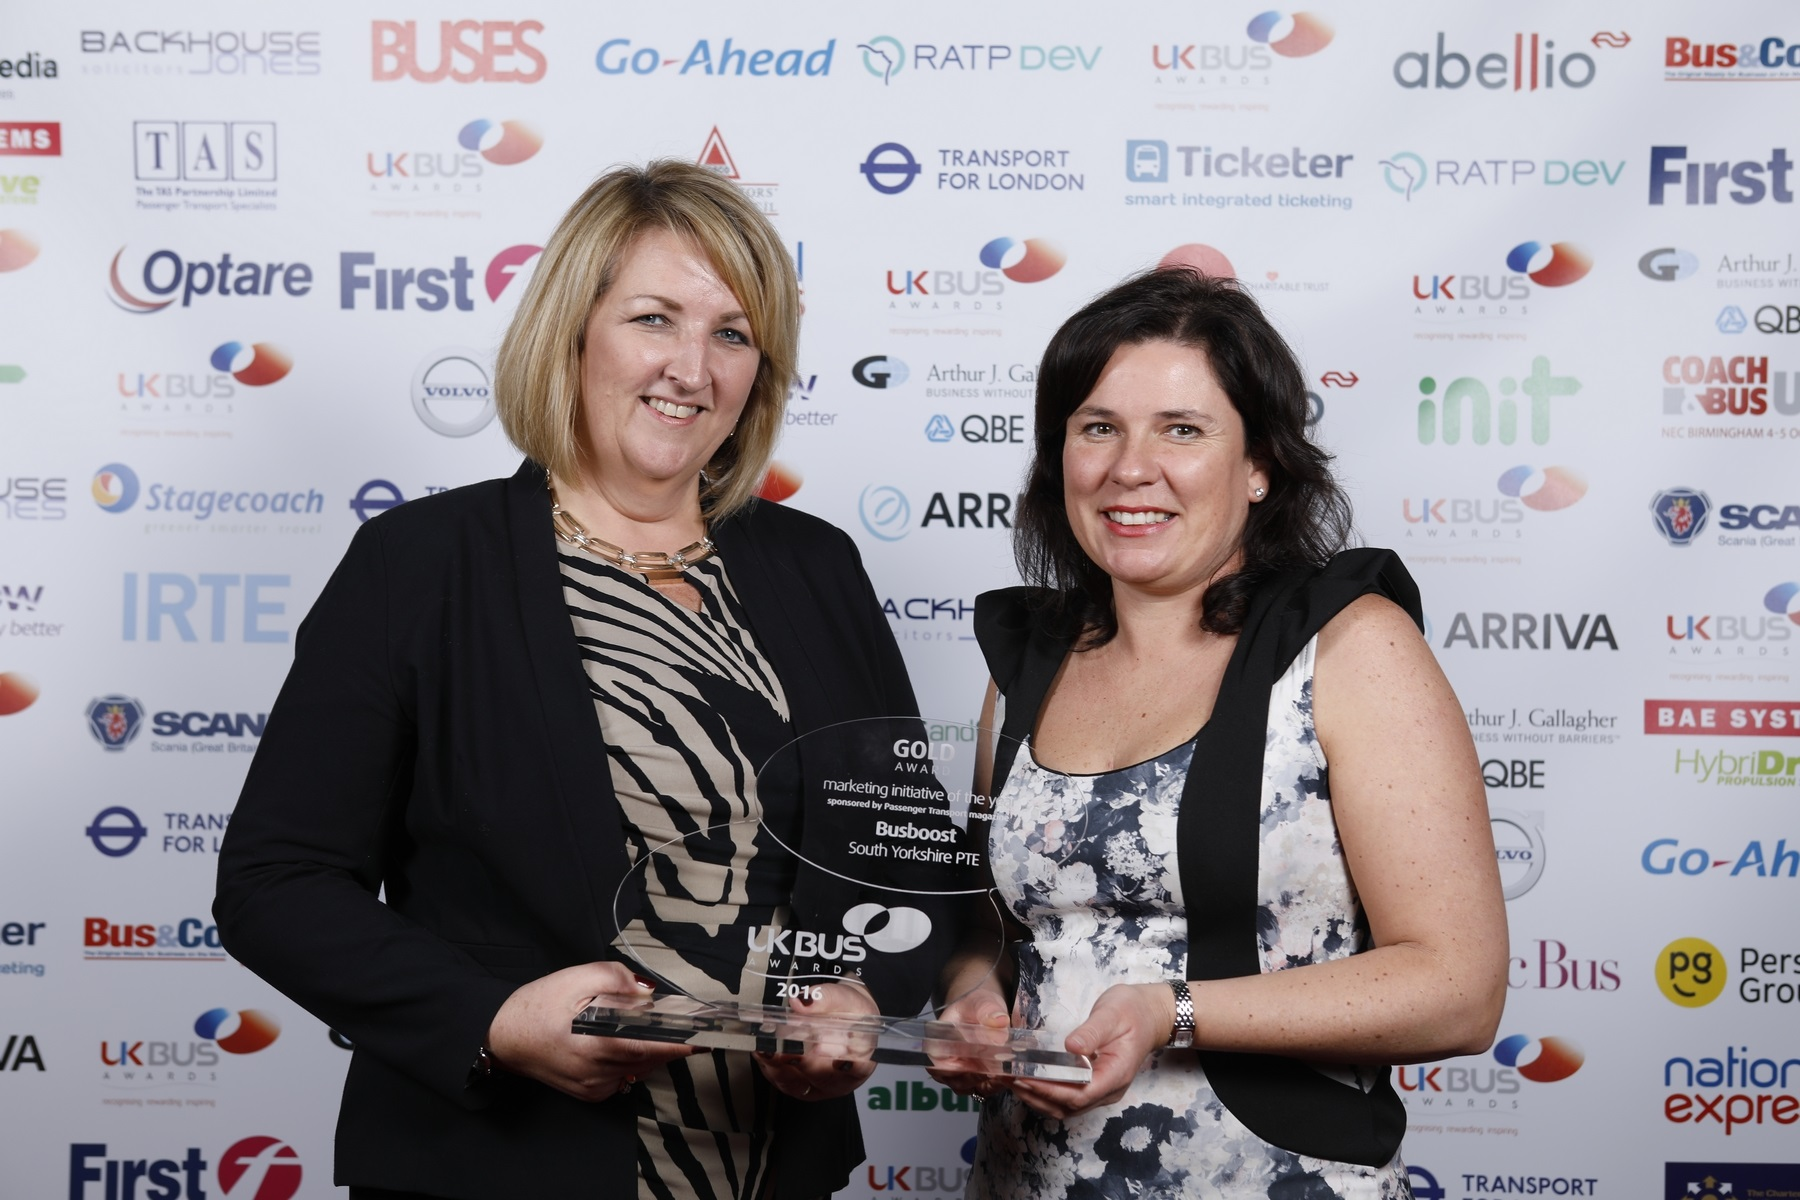 Inmotion! named winner of Marketing Initiative of the Year award at UK Bus Awards